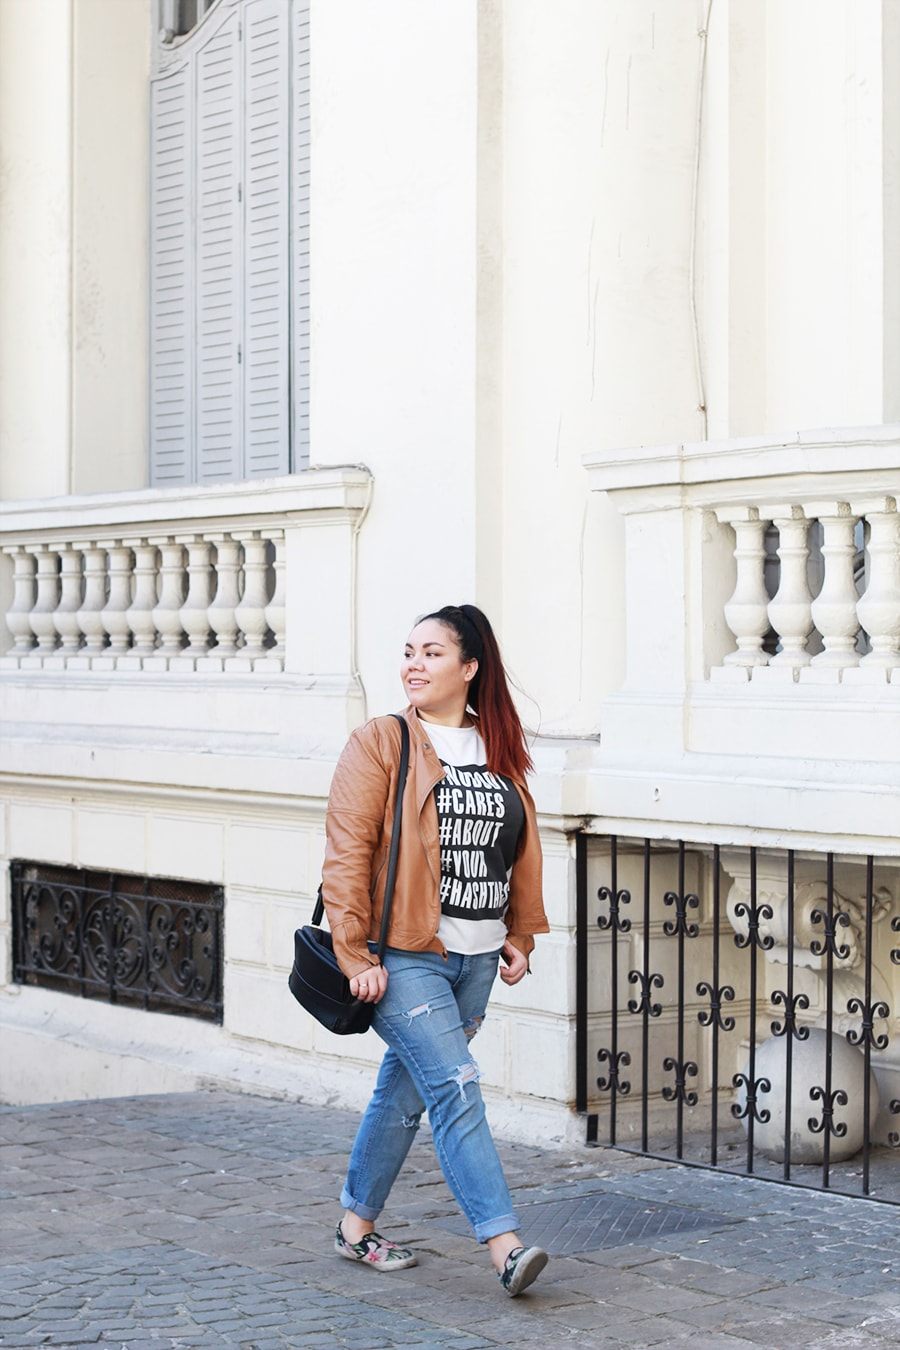 graphic-sweater-outfit-everyday-look-leather-jacket-ripped-jeans-plus-size-camel-hashtags-blogger-mexicana-chile